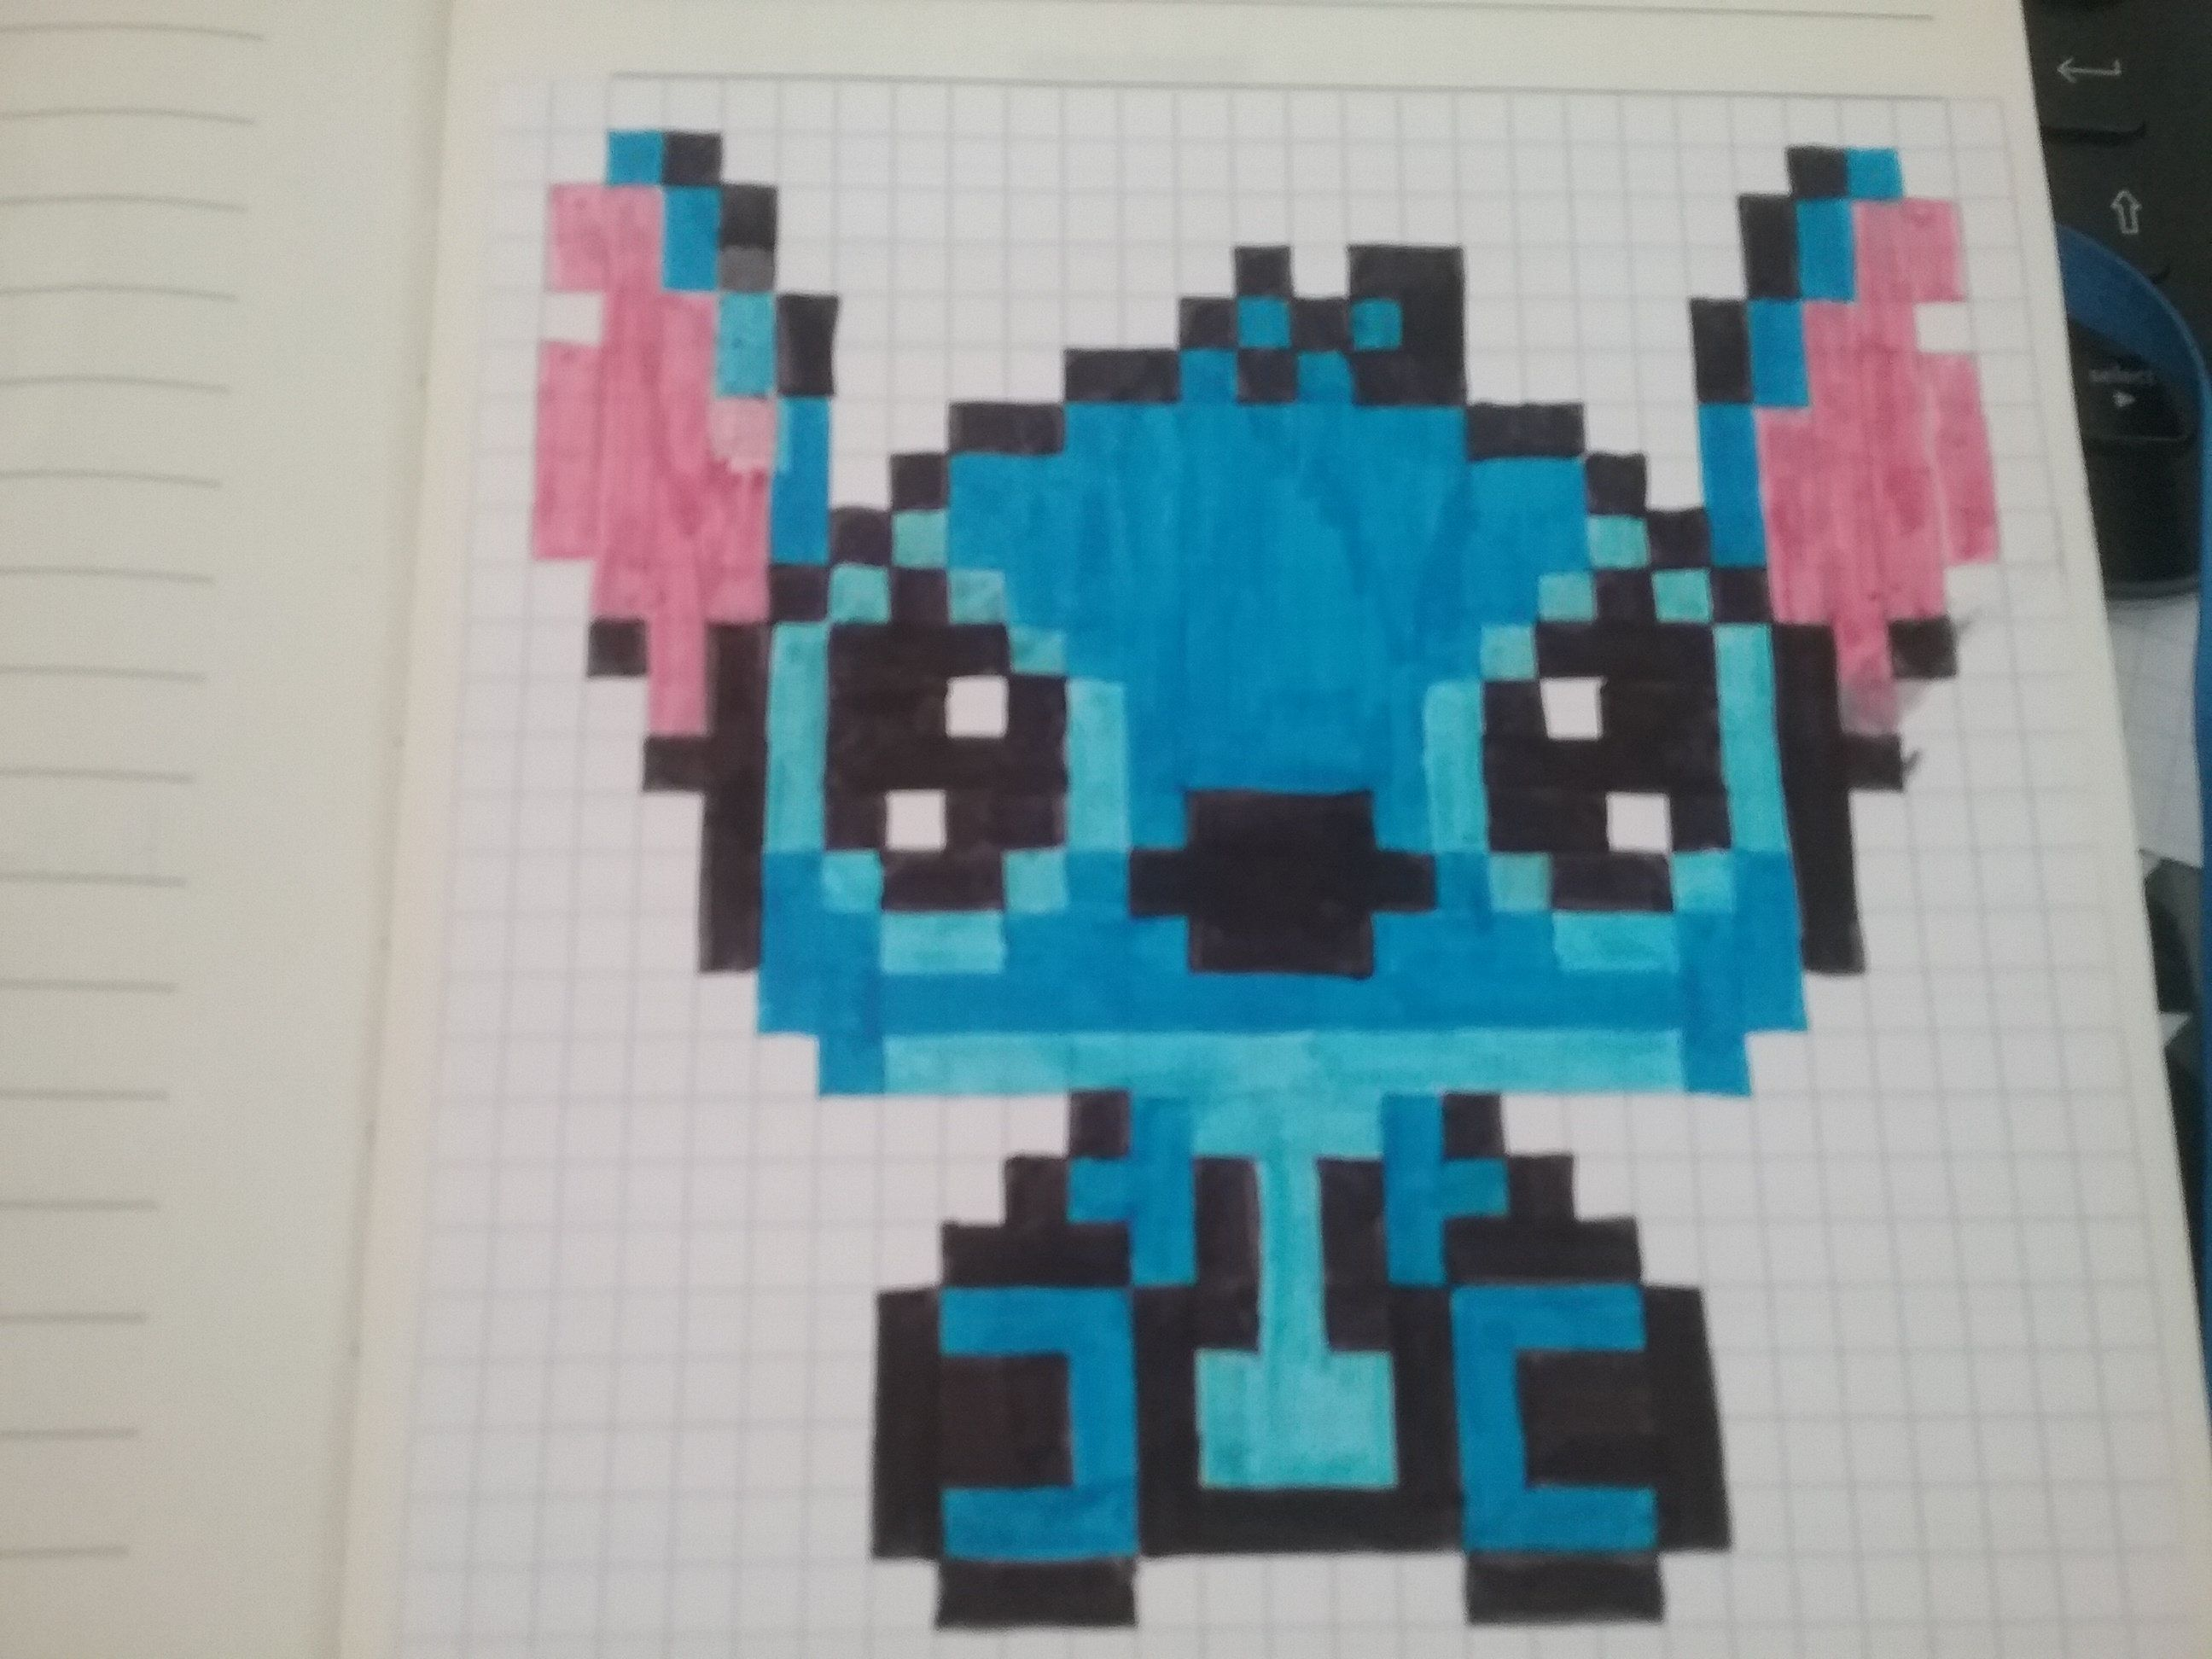 Dibujos De Fortnite Hama Vbucks Fortnite Free Vbucks Fortnite Free